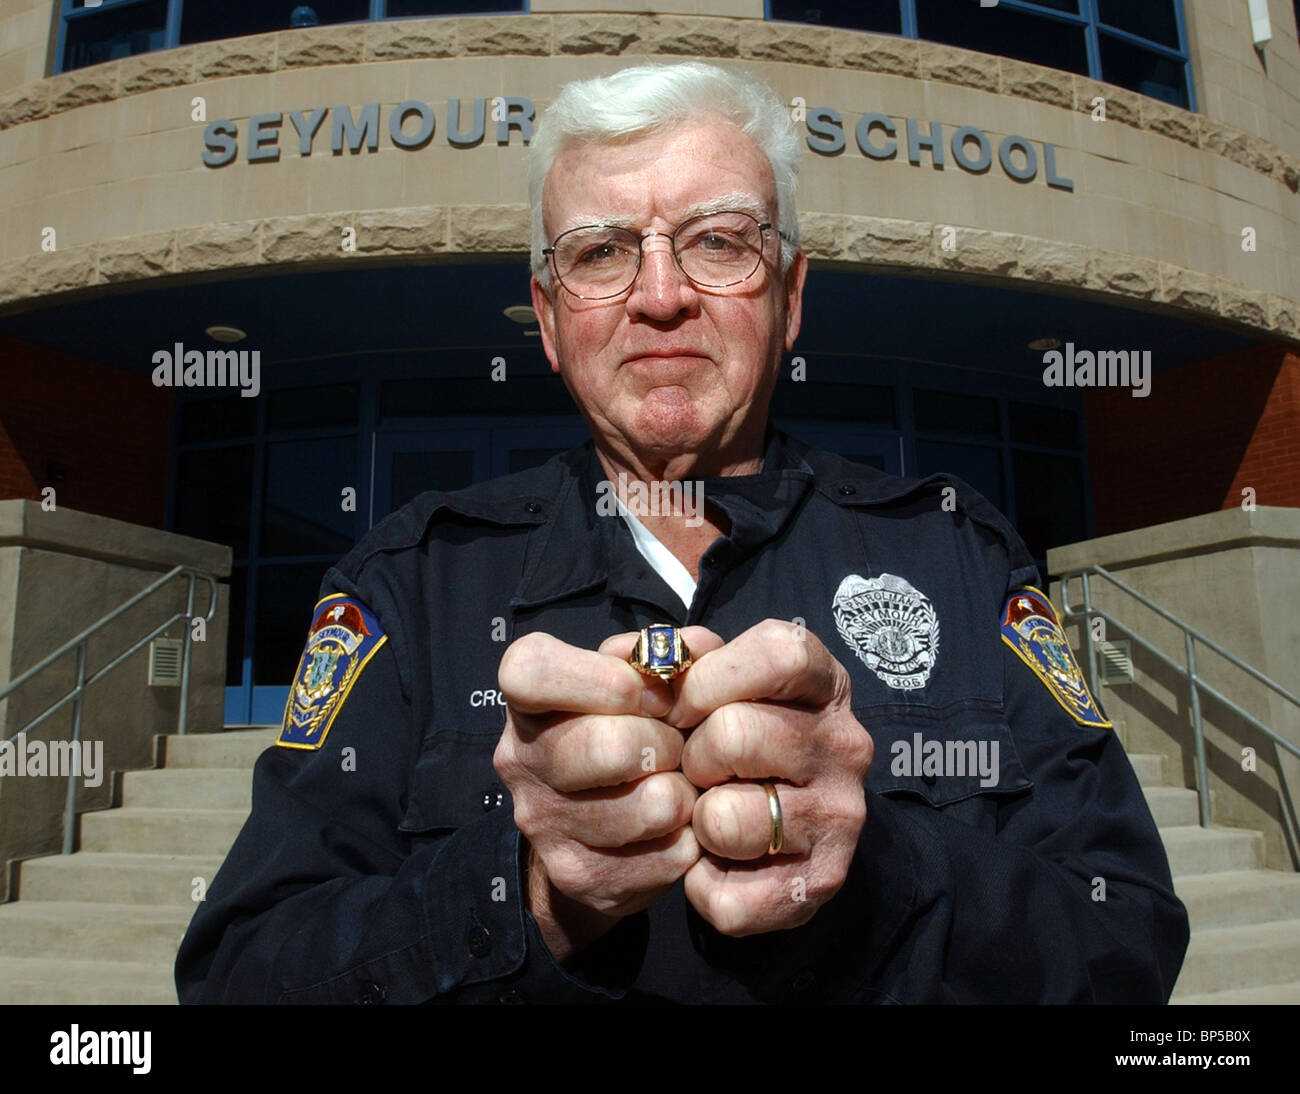 A Police officer shows off a class ring he found and returned it to it's owner some 30 years after High School - Stock Image